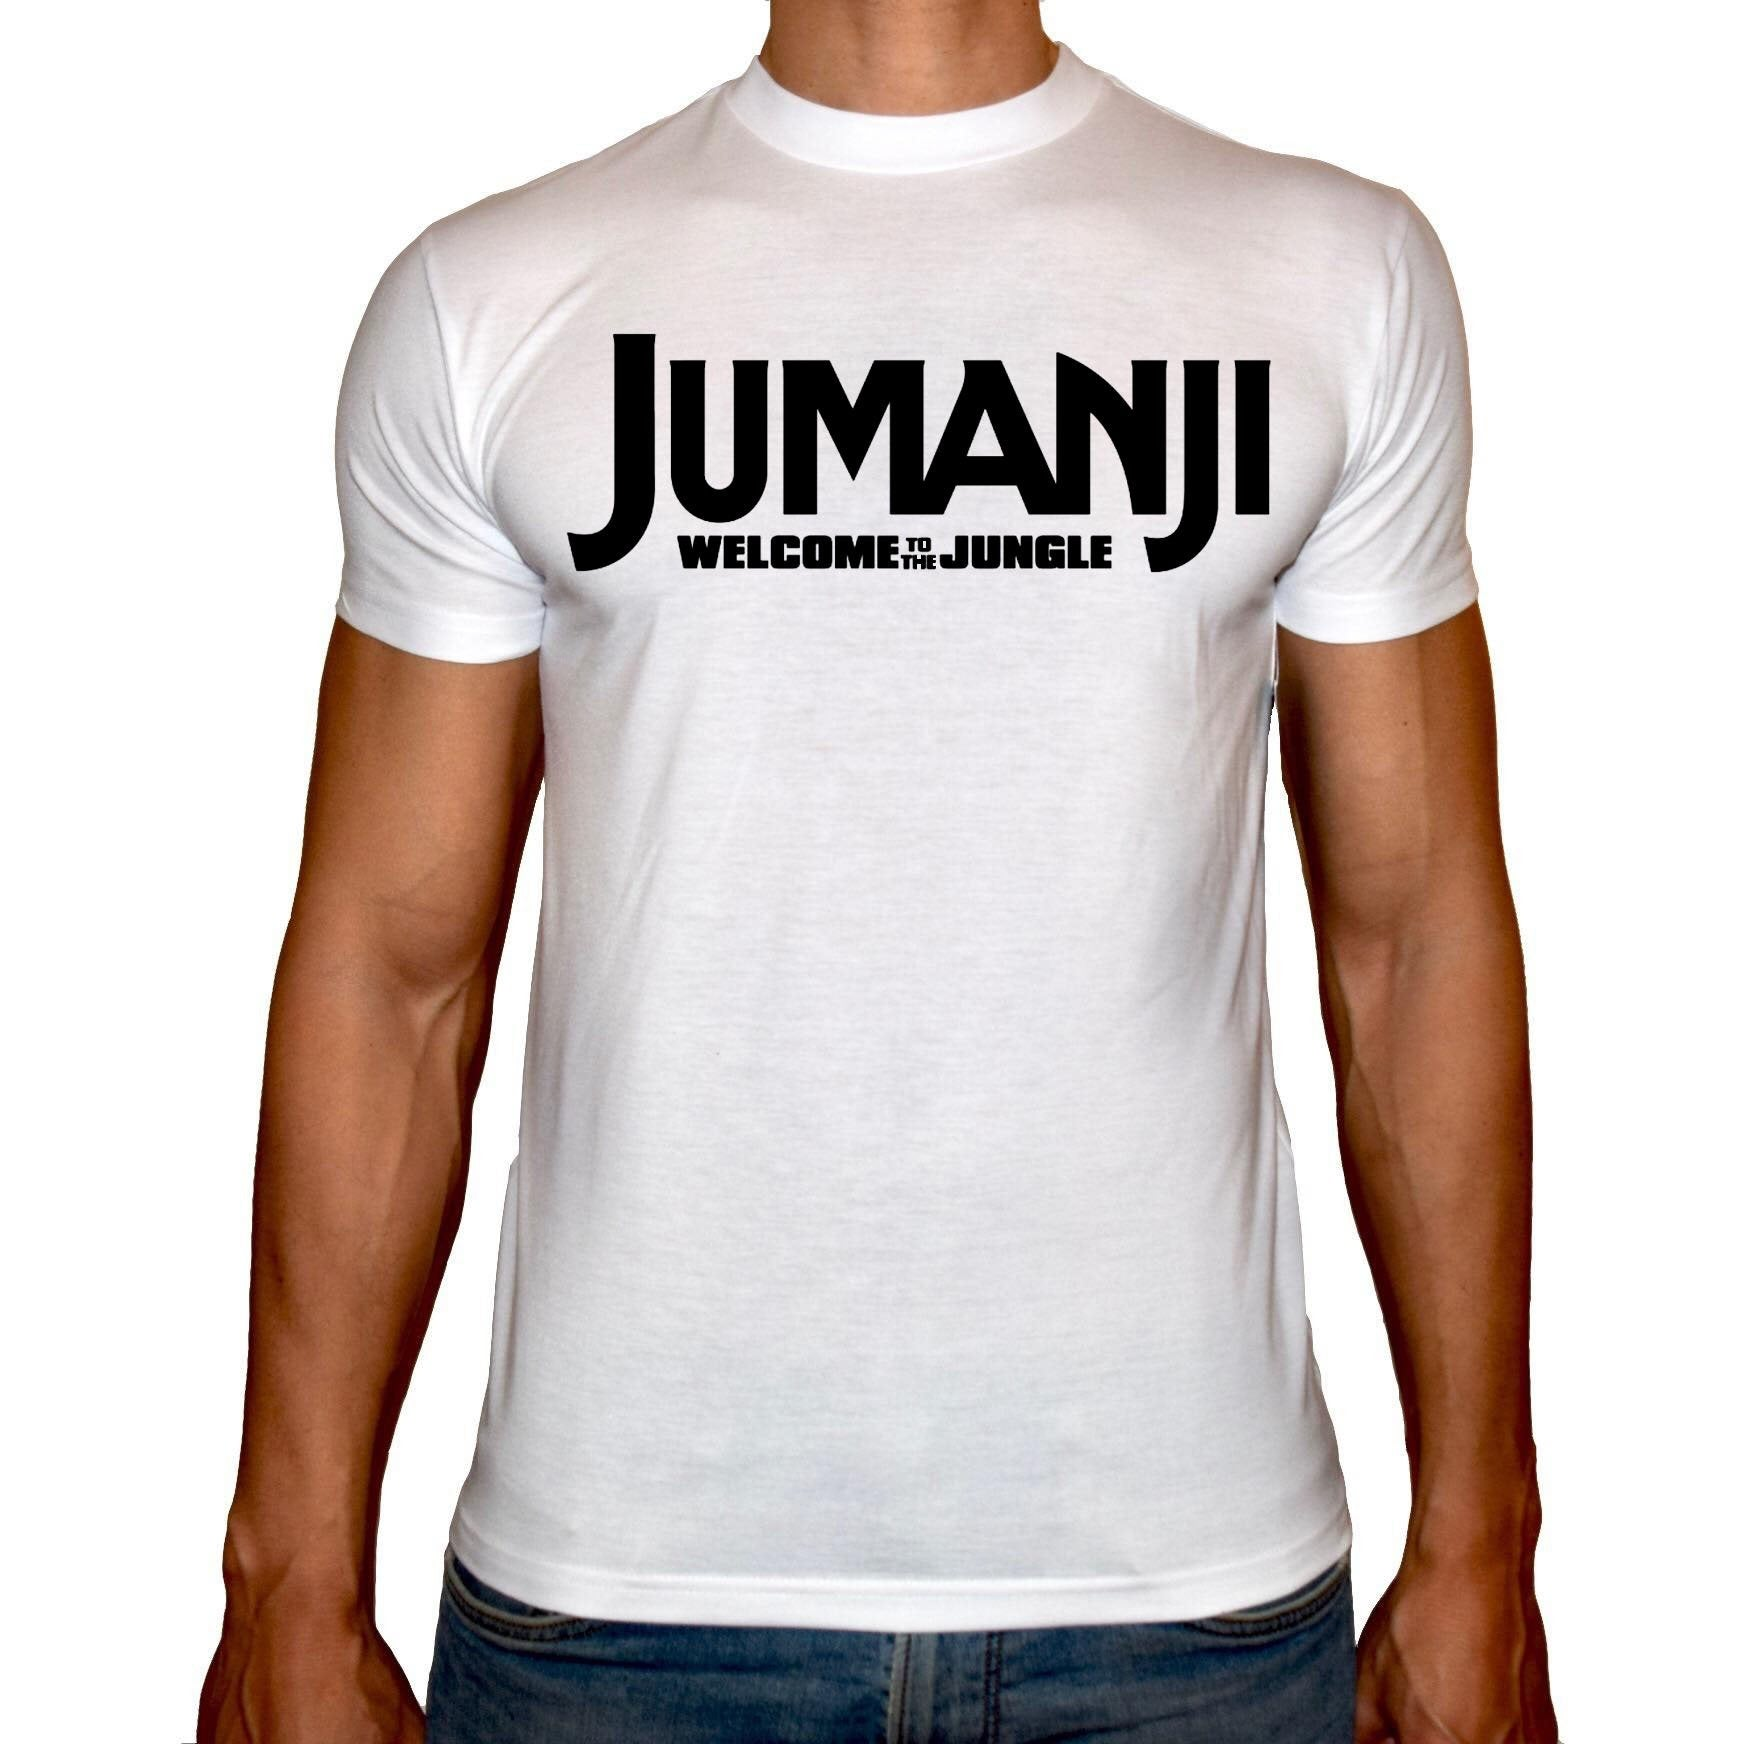 Phoenix WHITE Round Neck Printed T-Shirt Men (Jumanji)